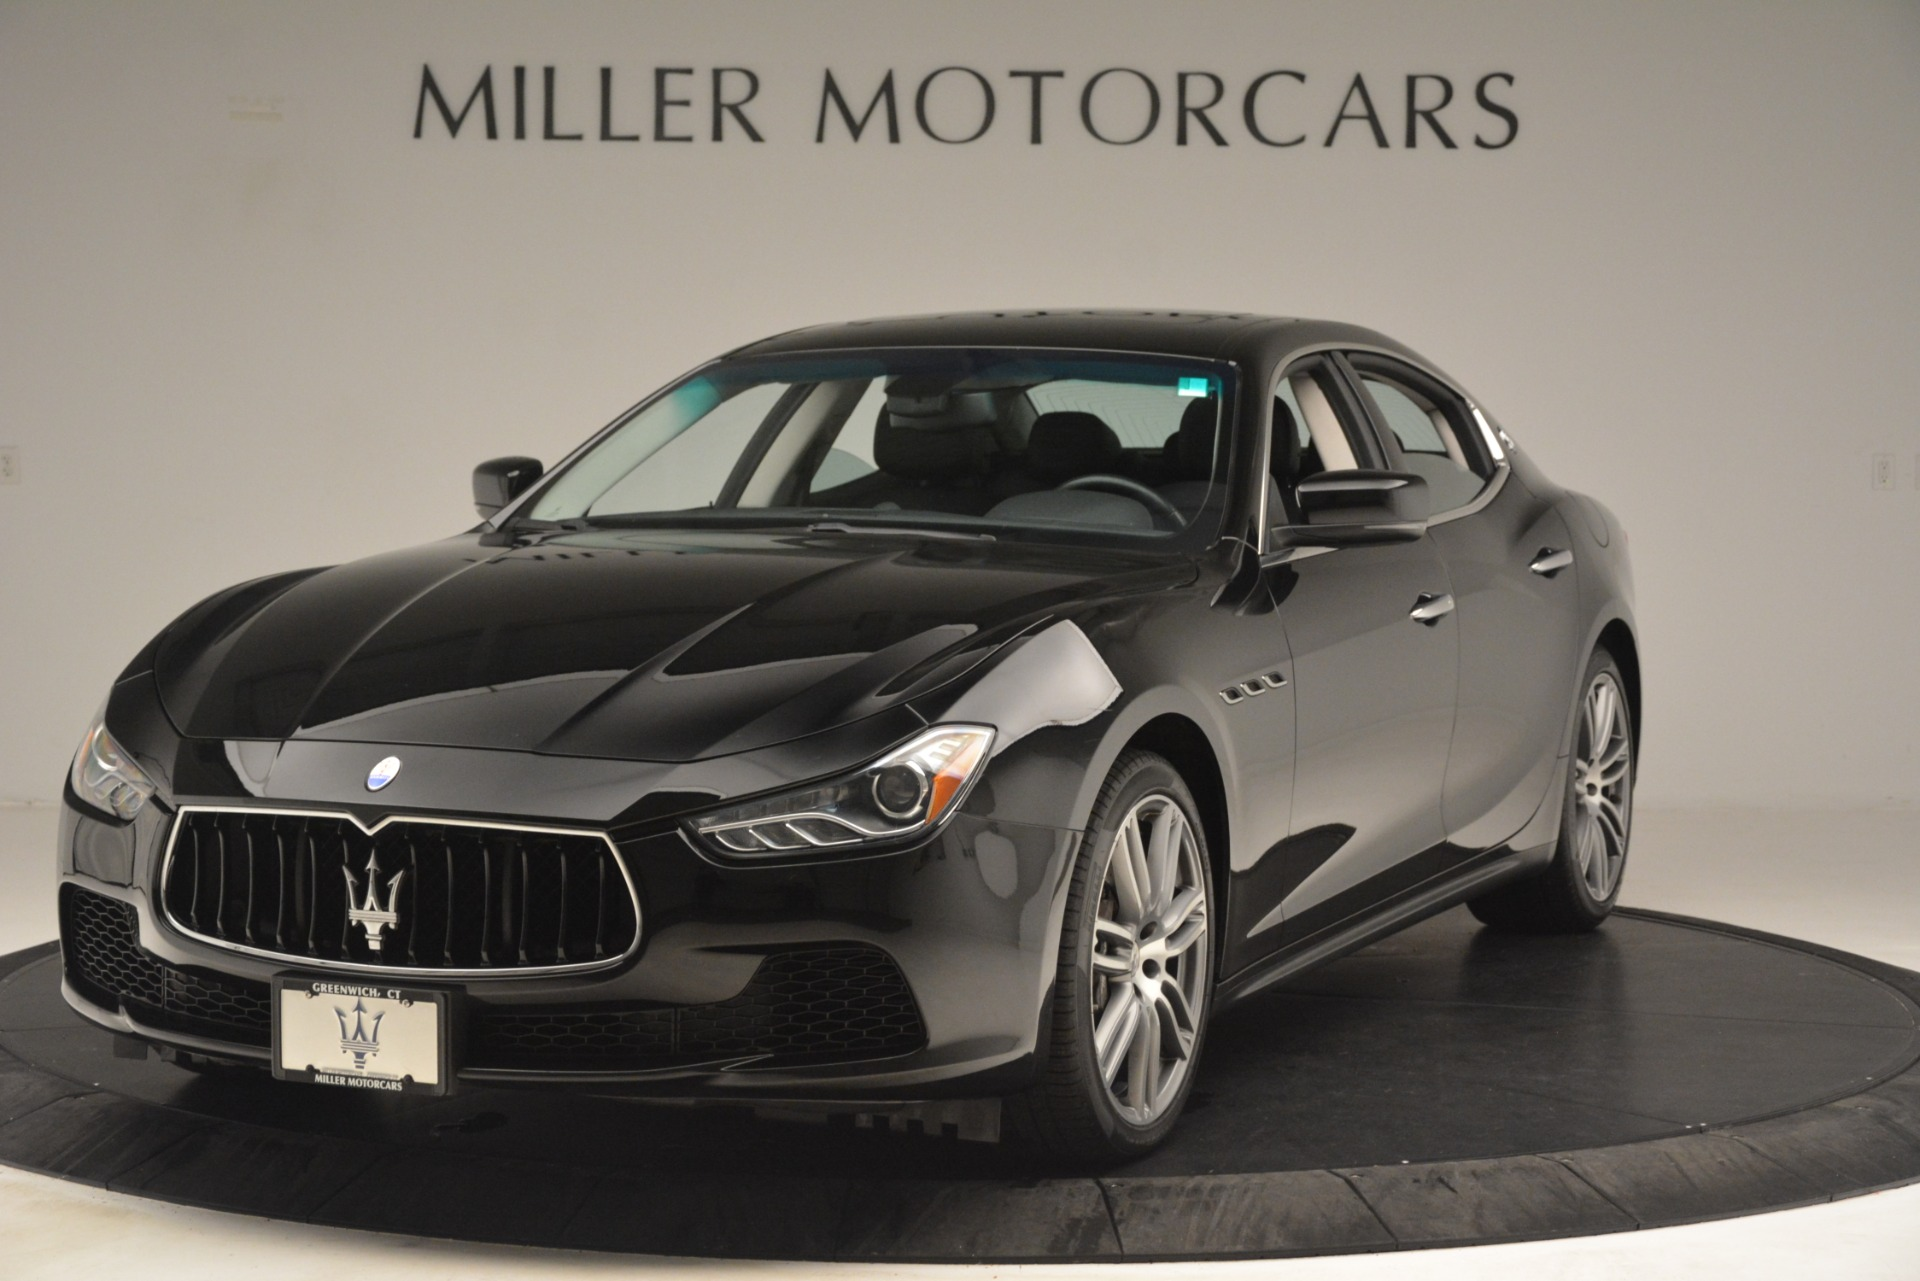 Used 2015 Maserati Ghibli S Q4 For Sale 41900 In Greenwich, CT